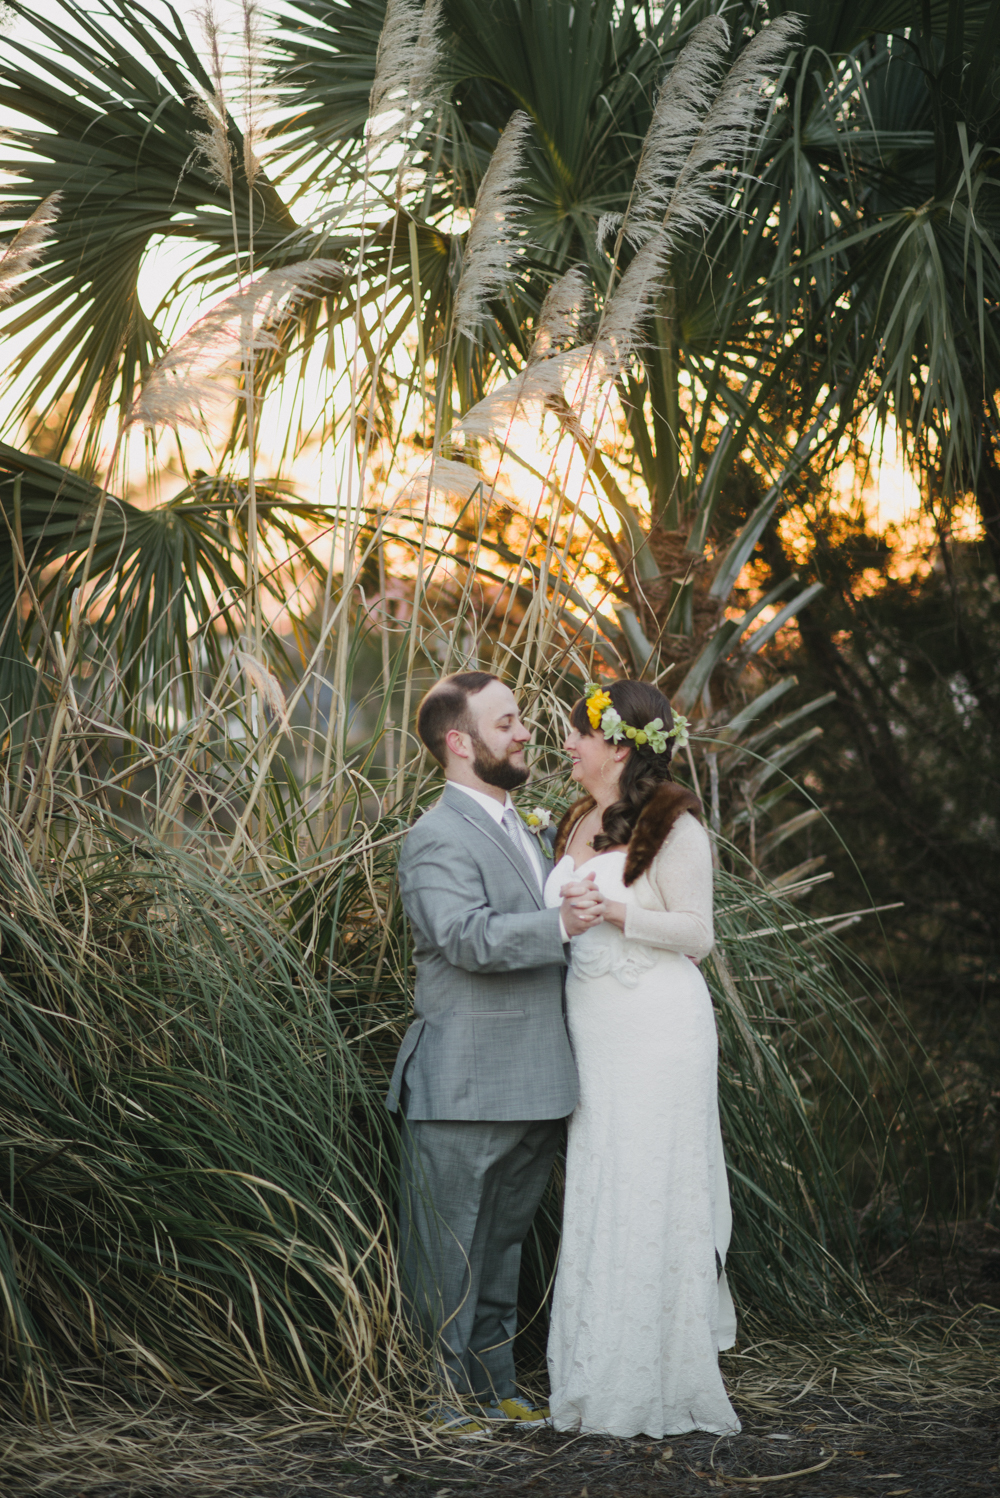 Yellow Charleston wedding at Cottage on the Creek by Sean Money + Elizabeth Fay